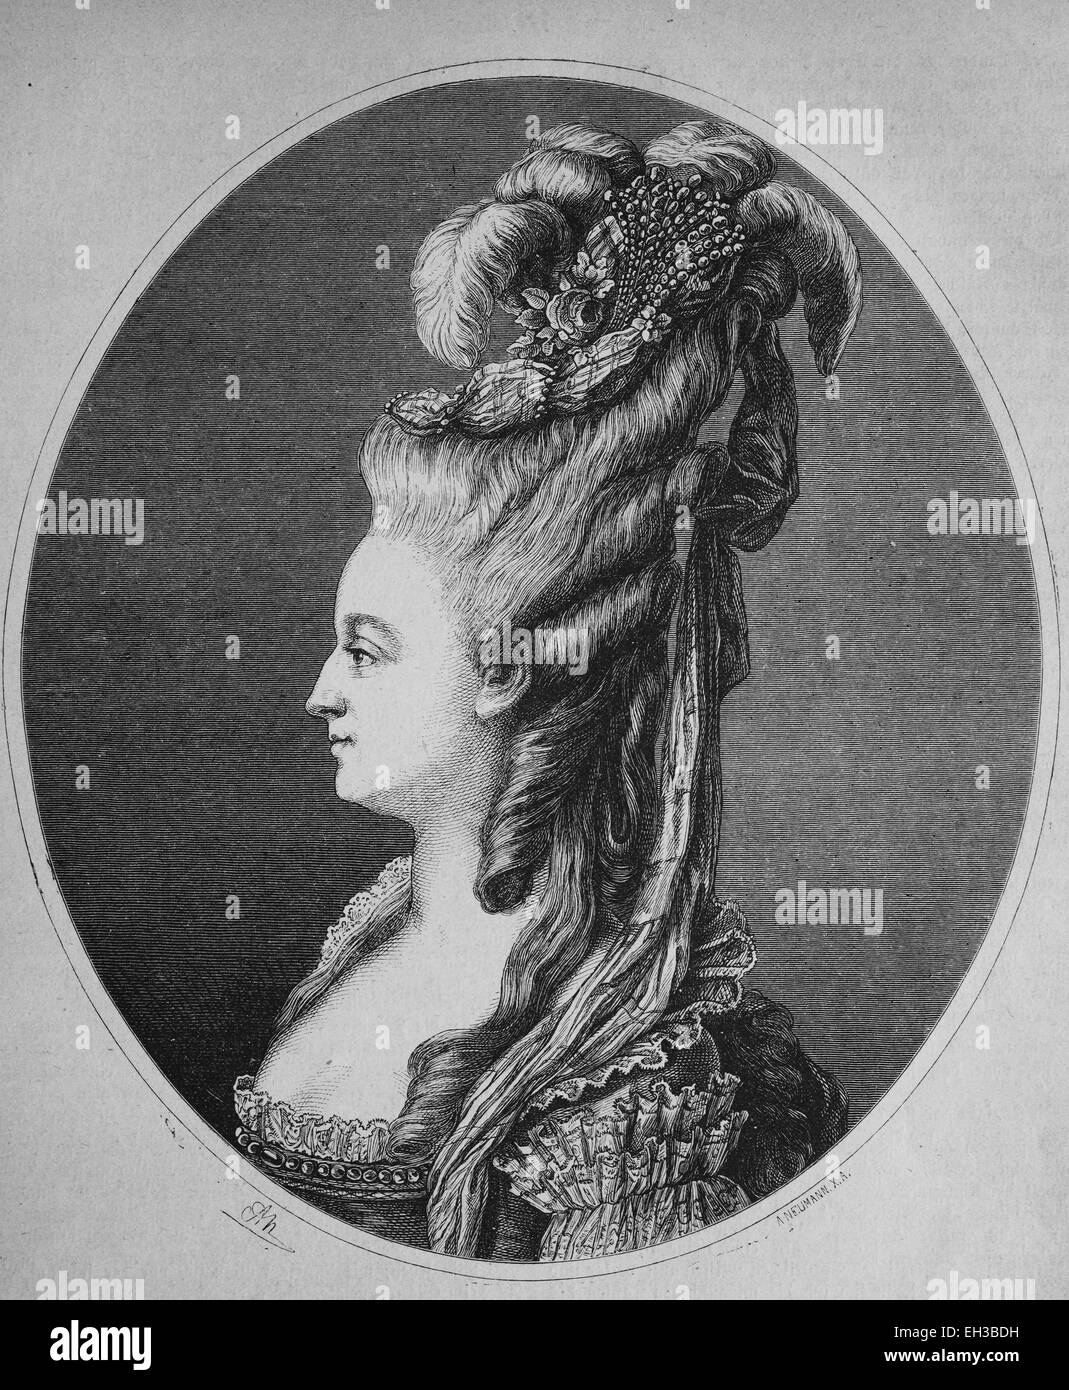 Marie Antoinette, 1755 - 1793, Archduchess of Austria, Princess of Hungary, Bohemia and Tuscany, wood engraving, - Stock Image